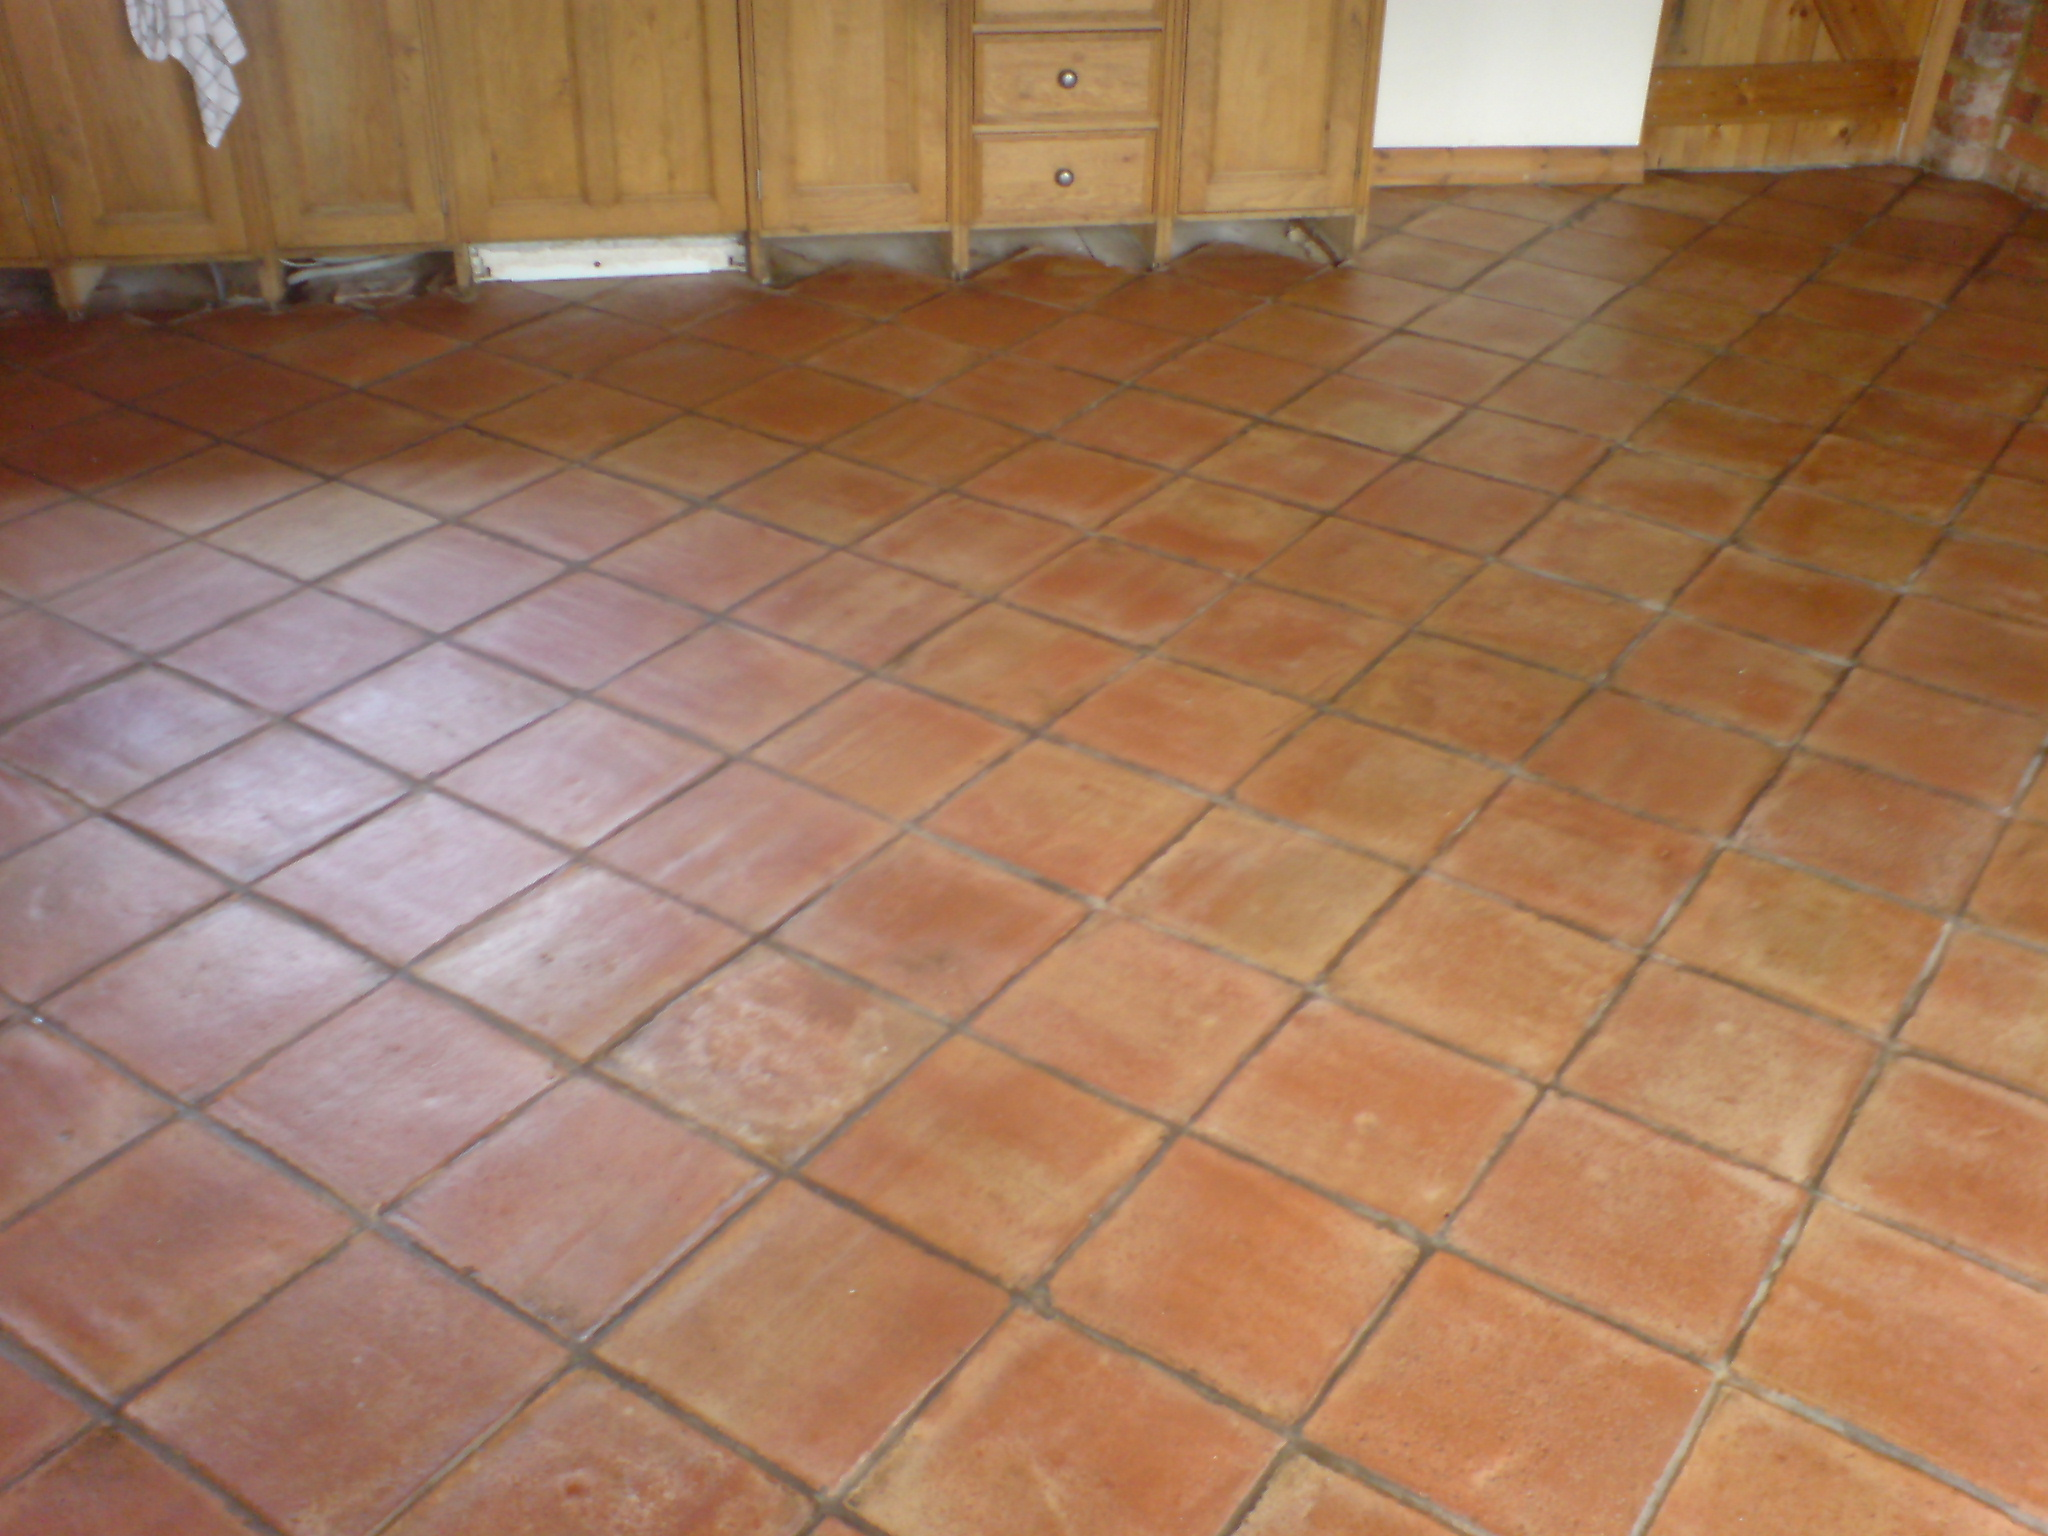 Tile Restoration And Renovation Unique Flooring With Terracotta Tiles